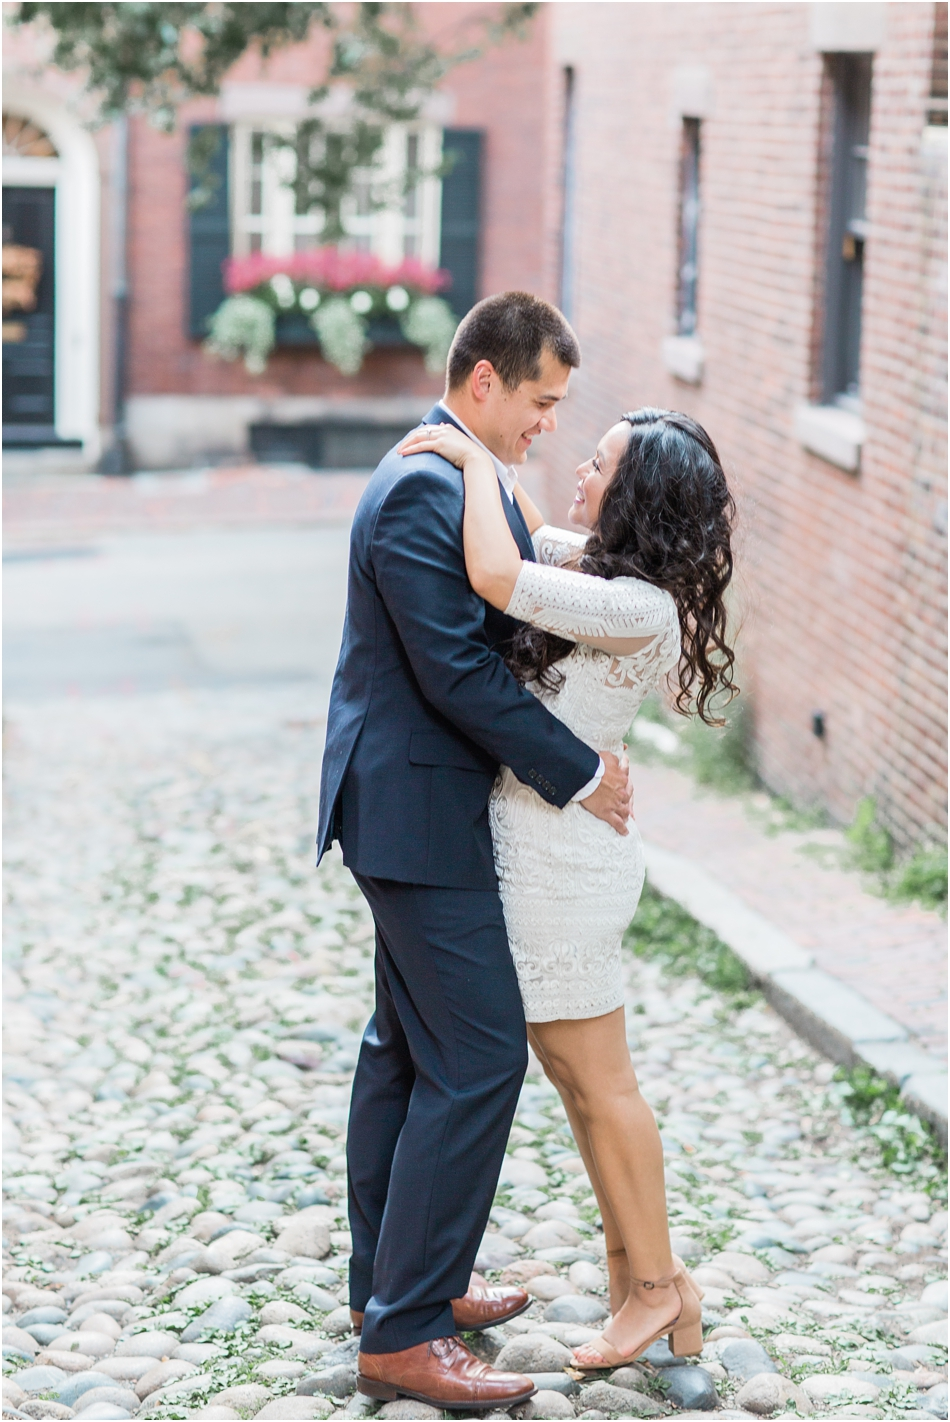 sheryl_corey_acorn_street_engagement_boston_commons_massachusetts_cape_cod_new_england_wedding_photographer_Meredith_Jane_Photography_photo_2008.jpg